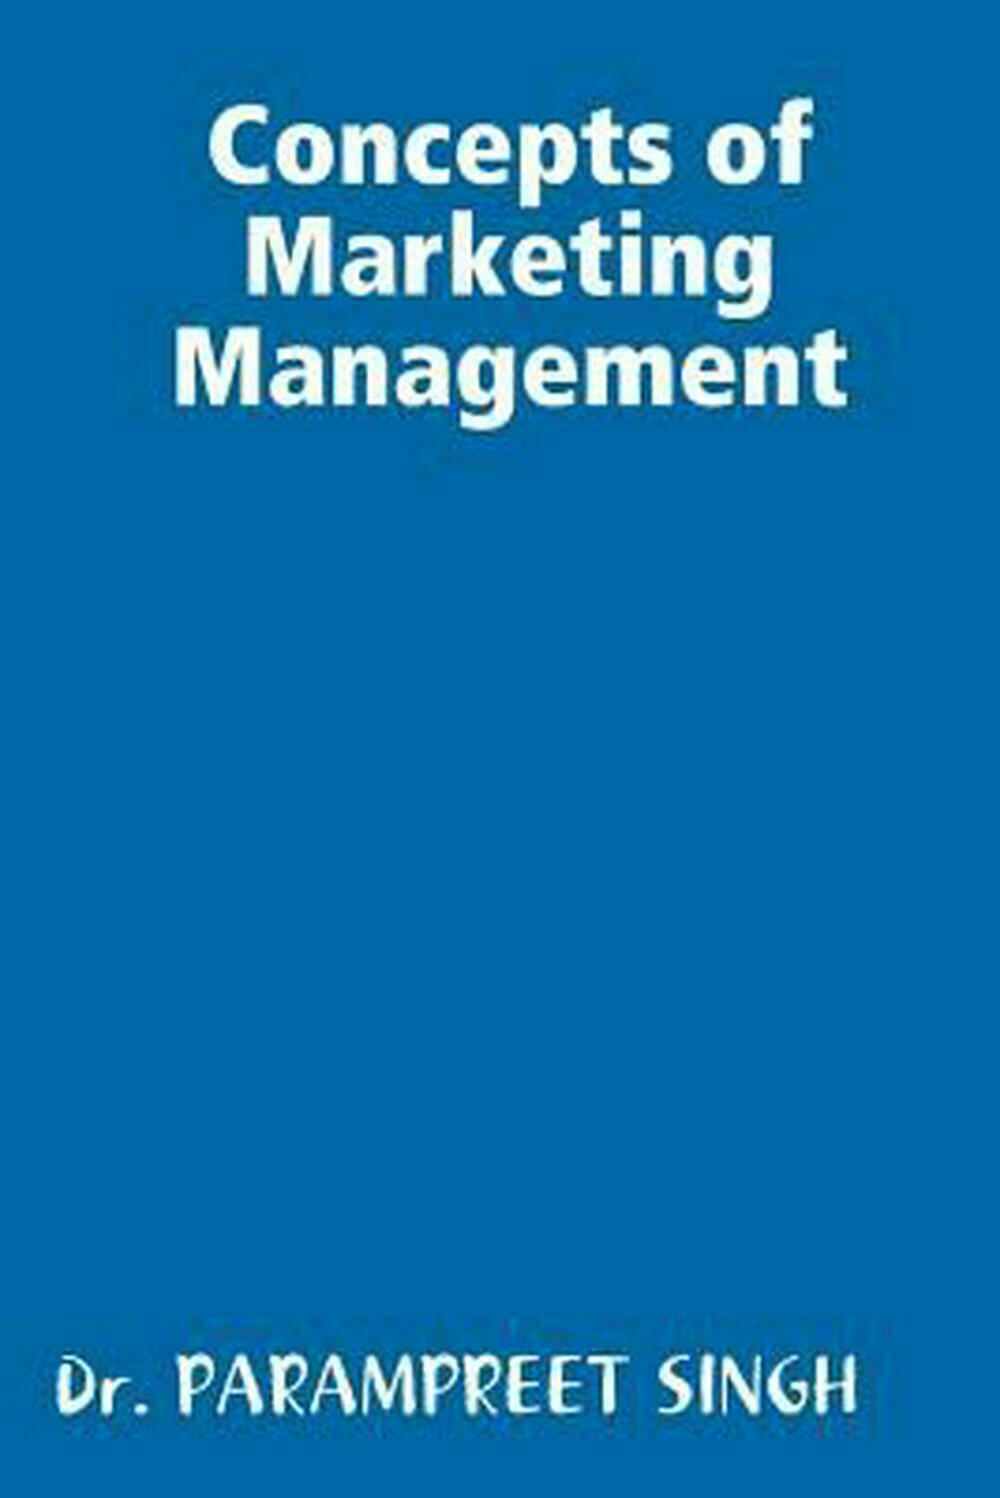 Concepts of Marketing Management by Parampreet Singh Paperback Book Free Shippin